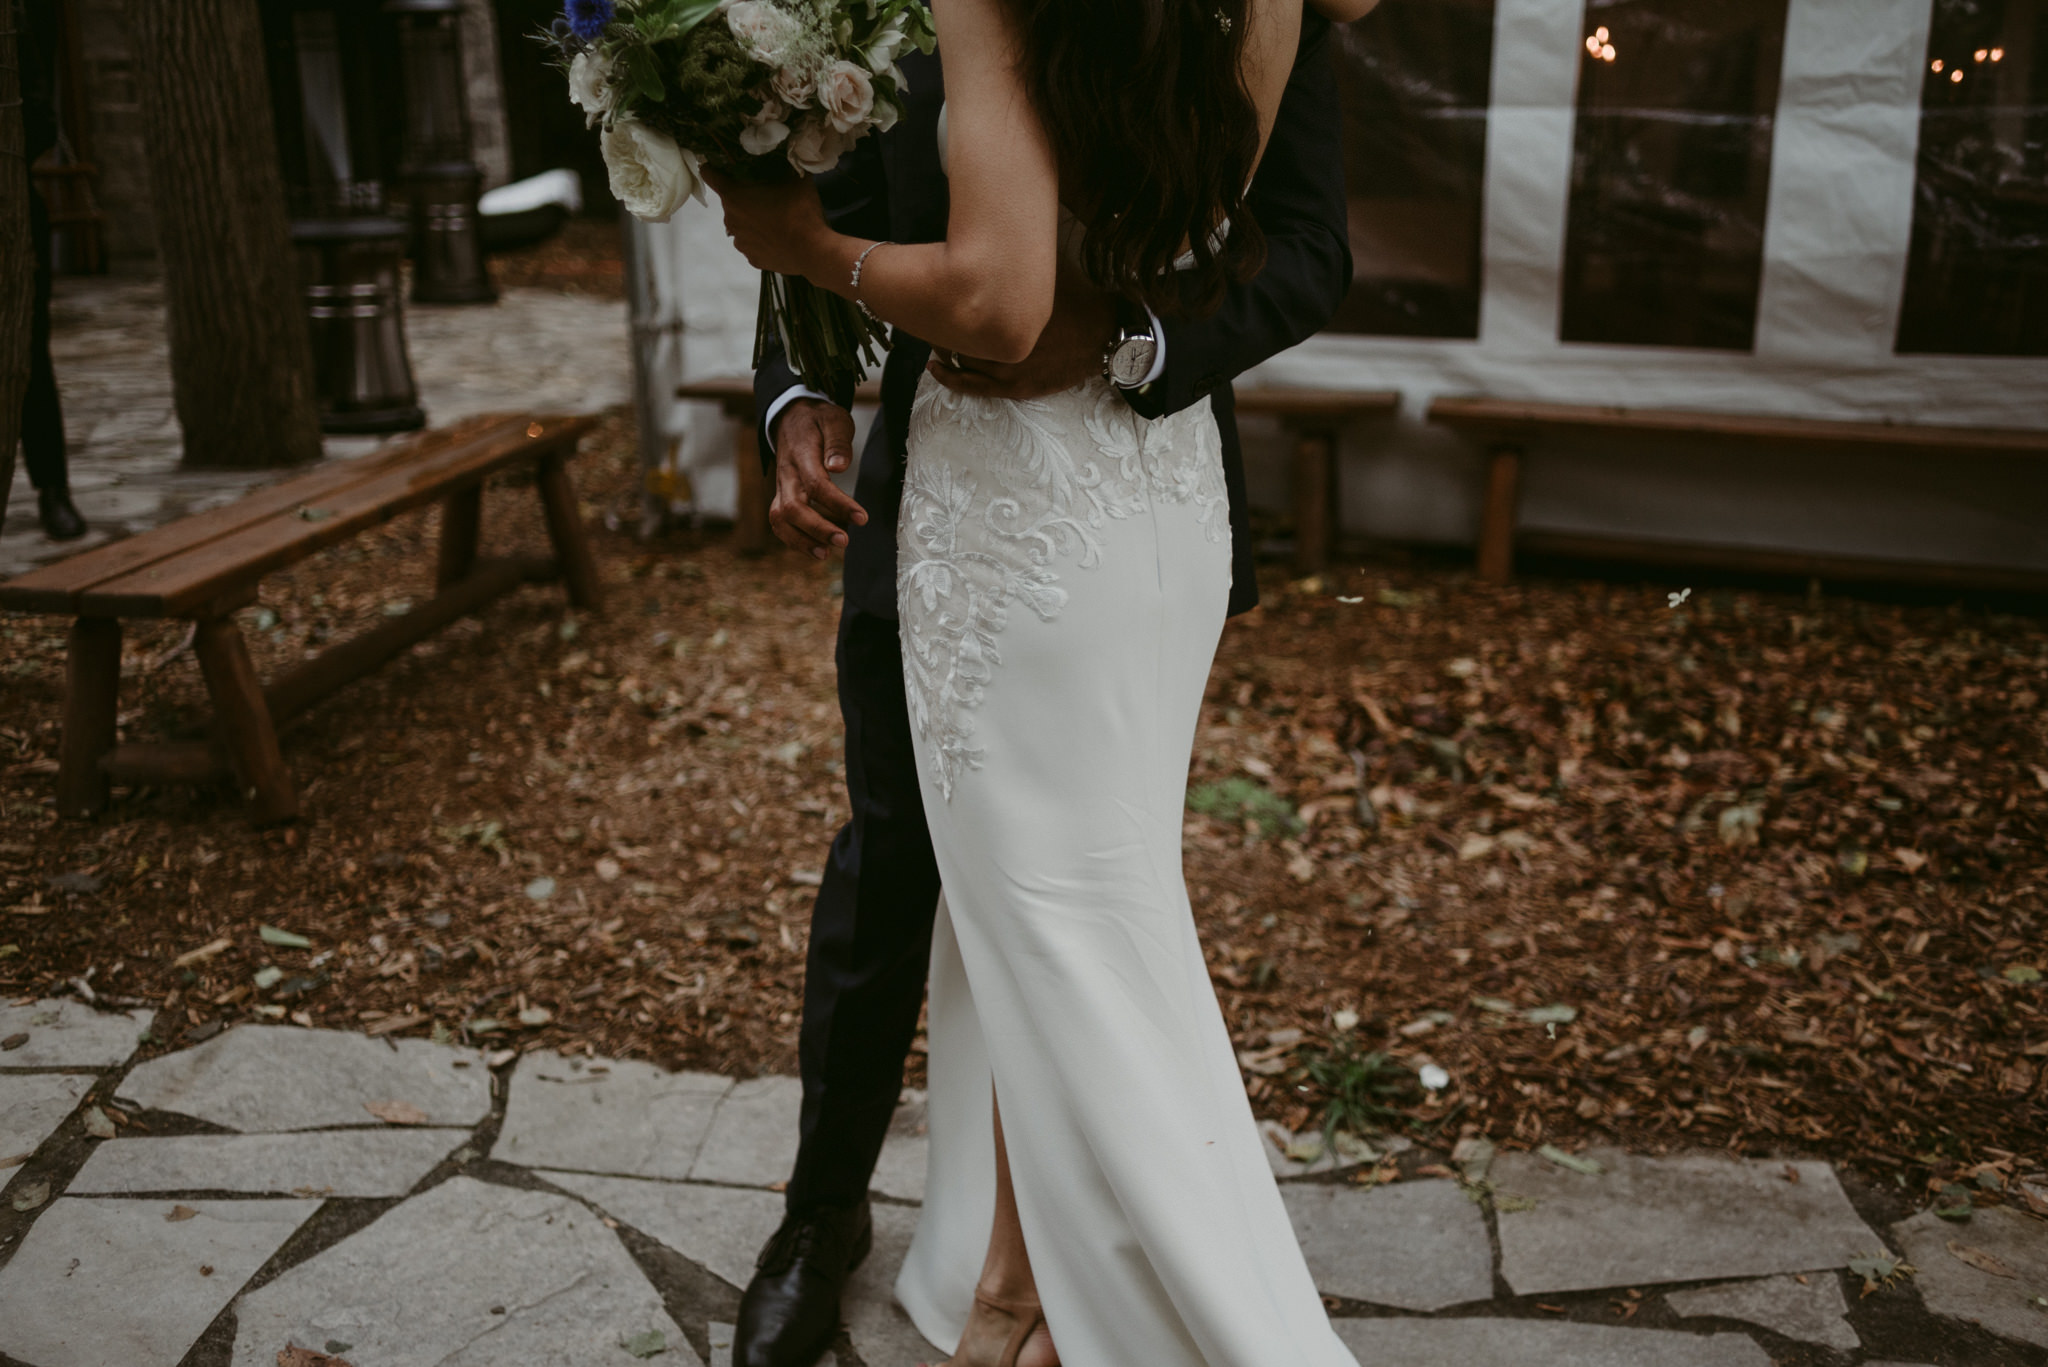 bride and groom hugging after wedding ceremony